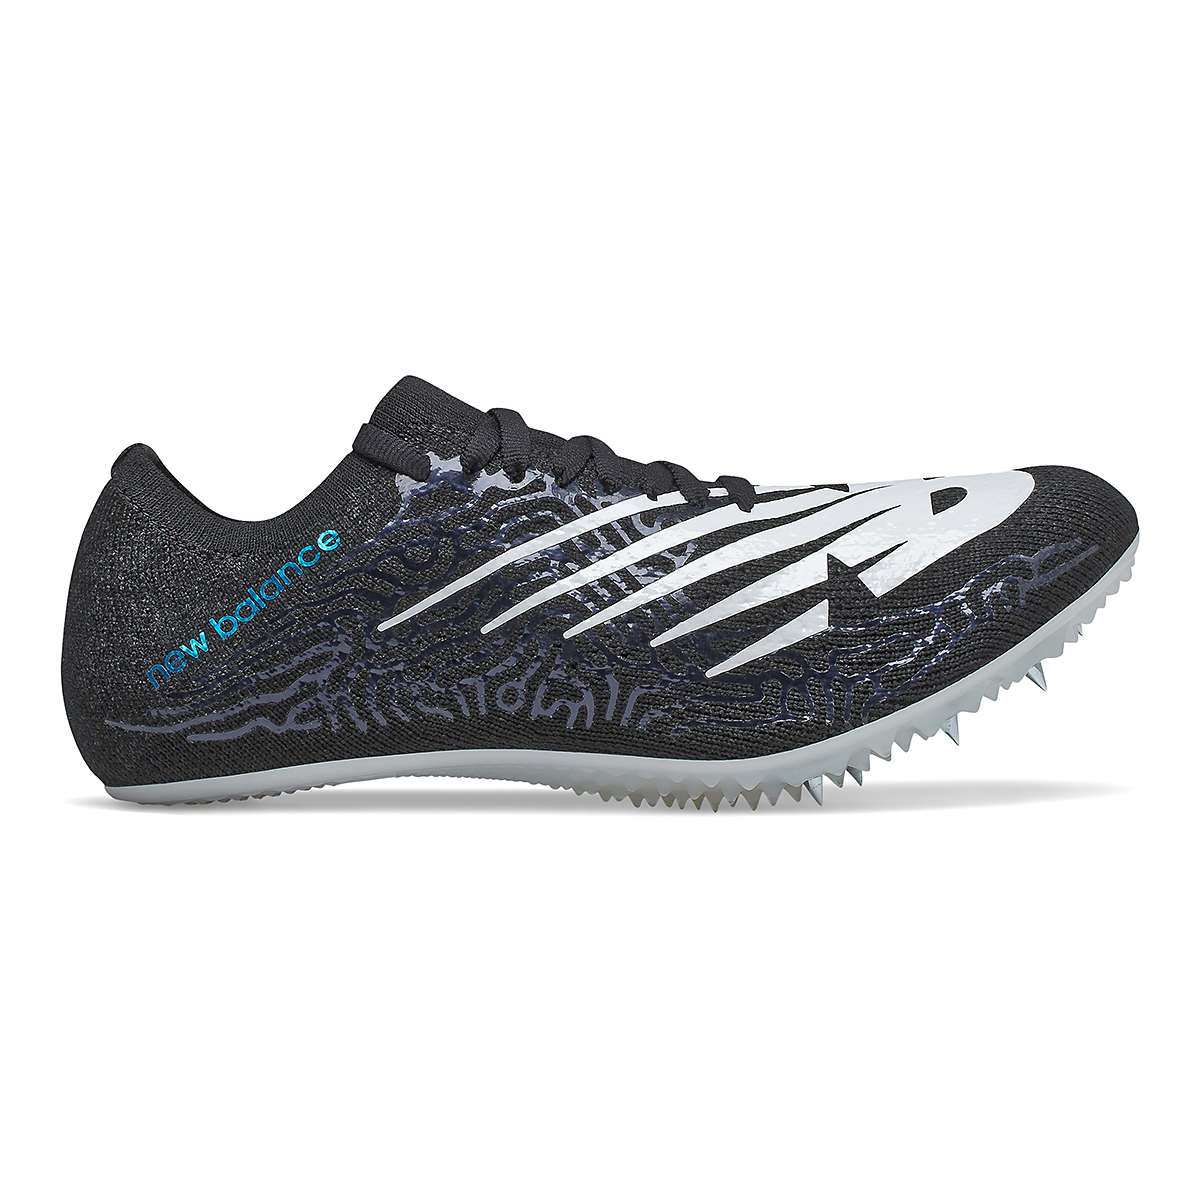 Women's New Balance Sigma Aria Track Spikes - Color: Black/White - Size: 5.5 - Width: Regular, Black/White, large, image 1